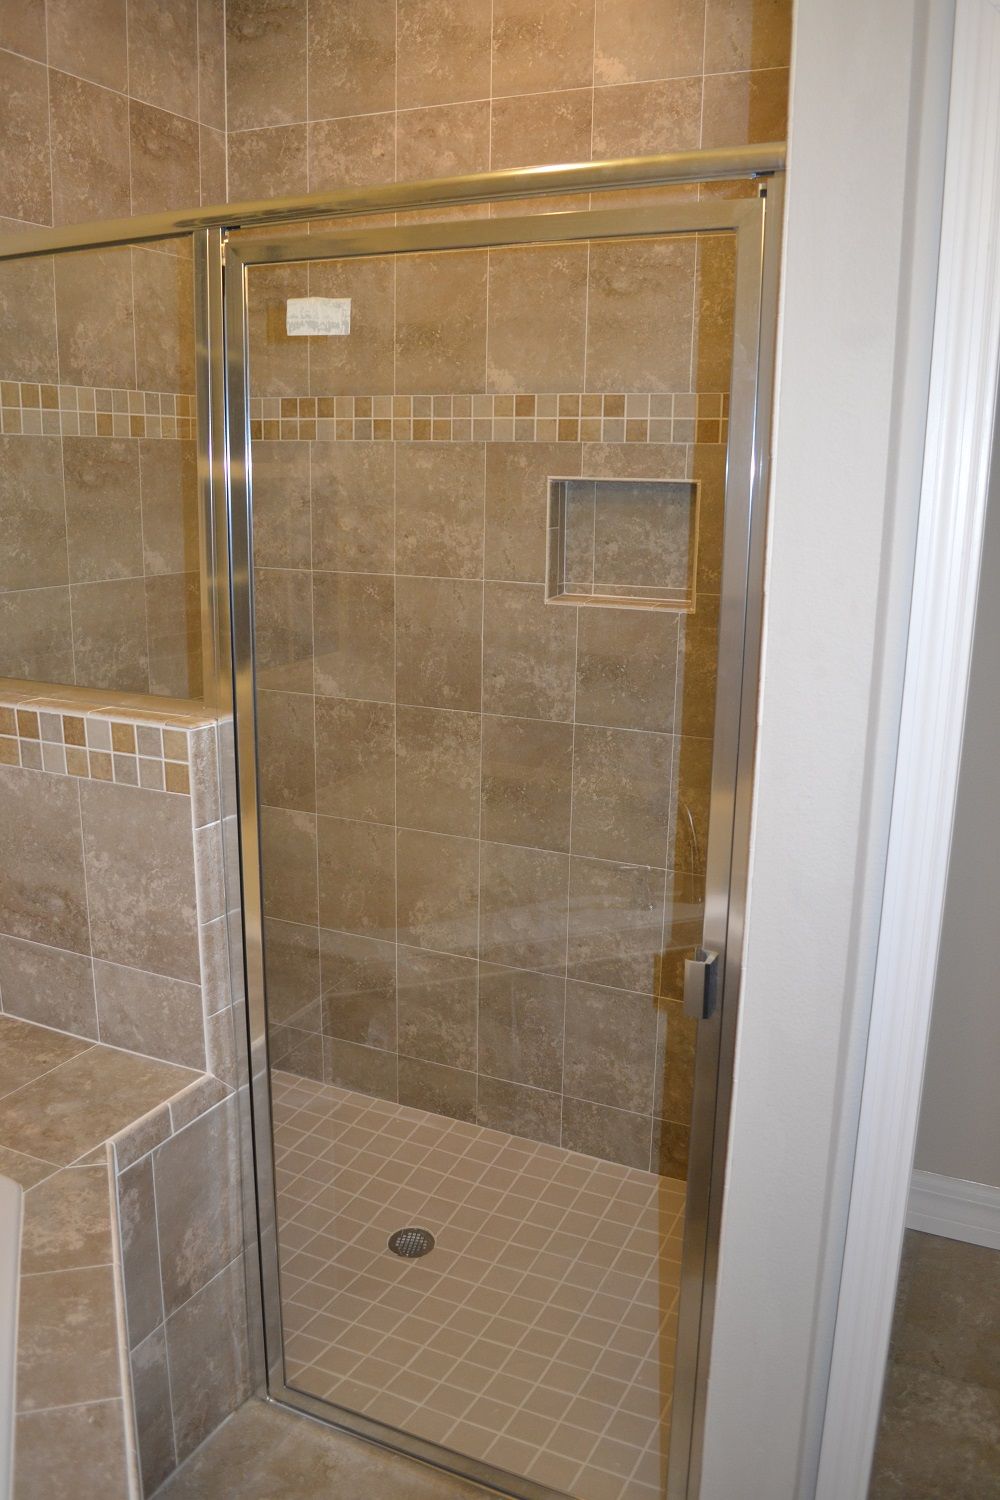 zero entry shower, roll in shower, recessed soap dish